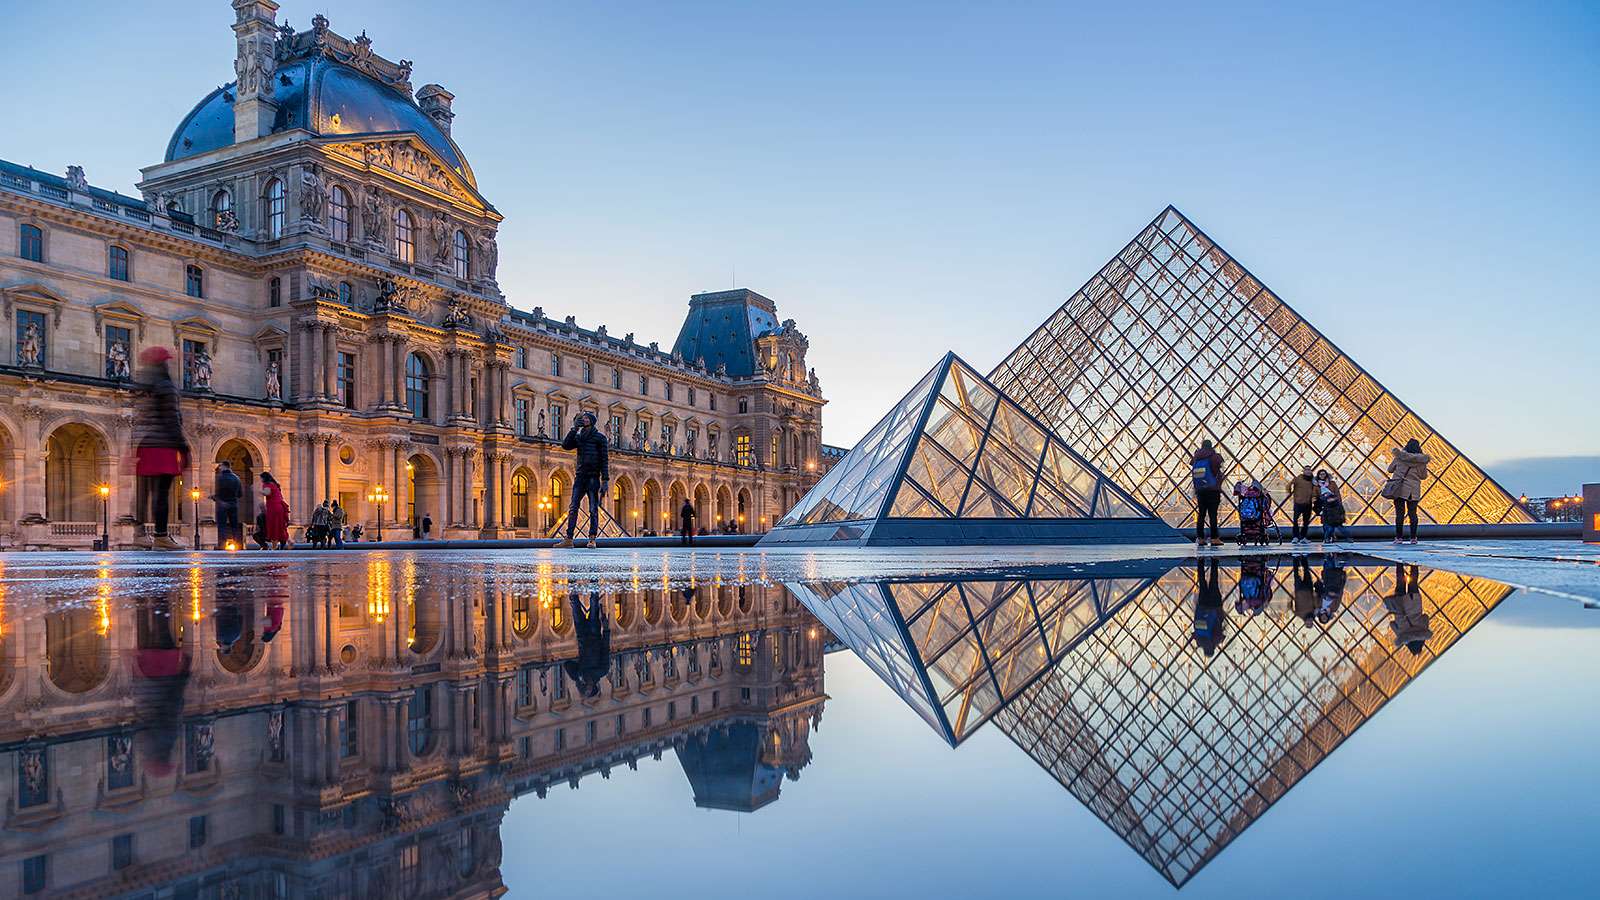 Here are the 11 most beautiful museums in the world